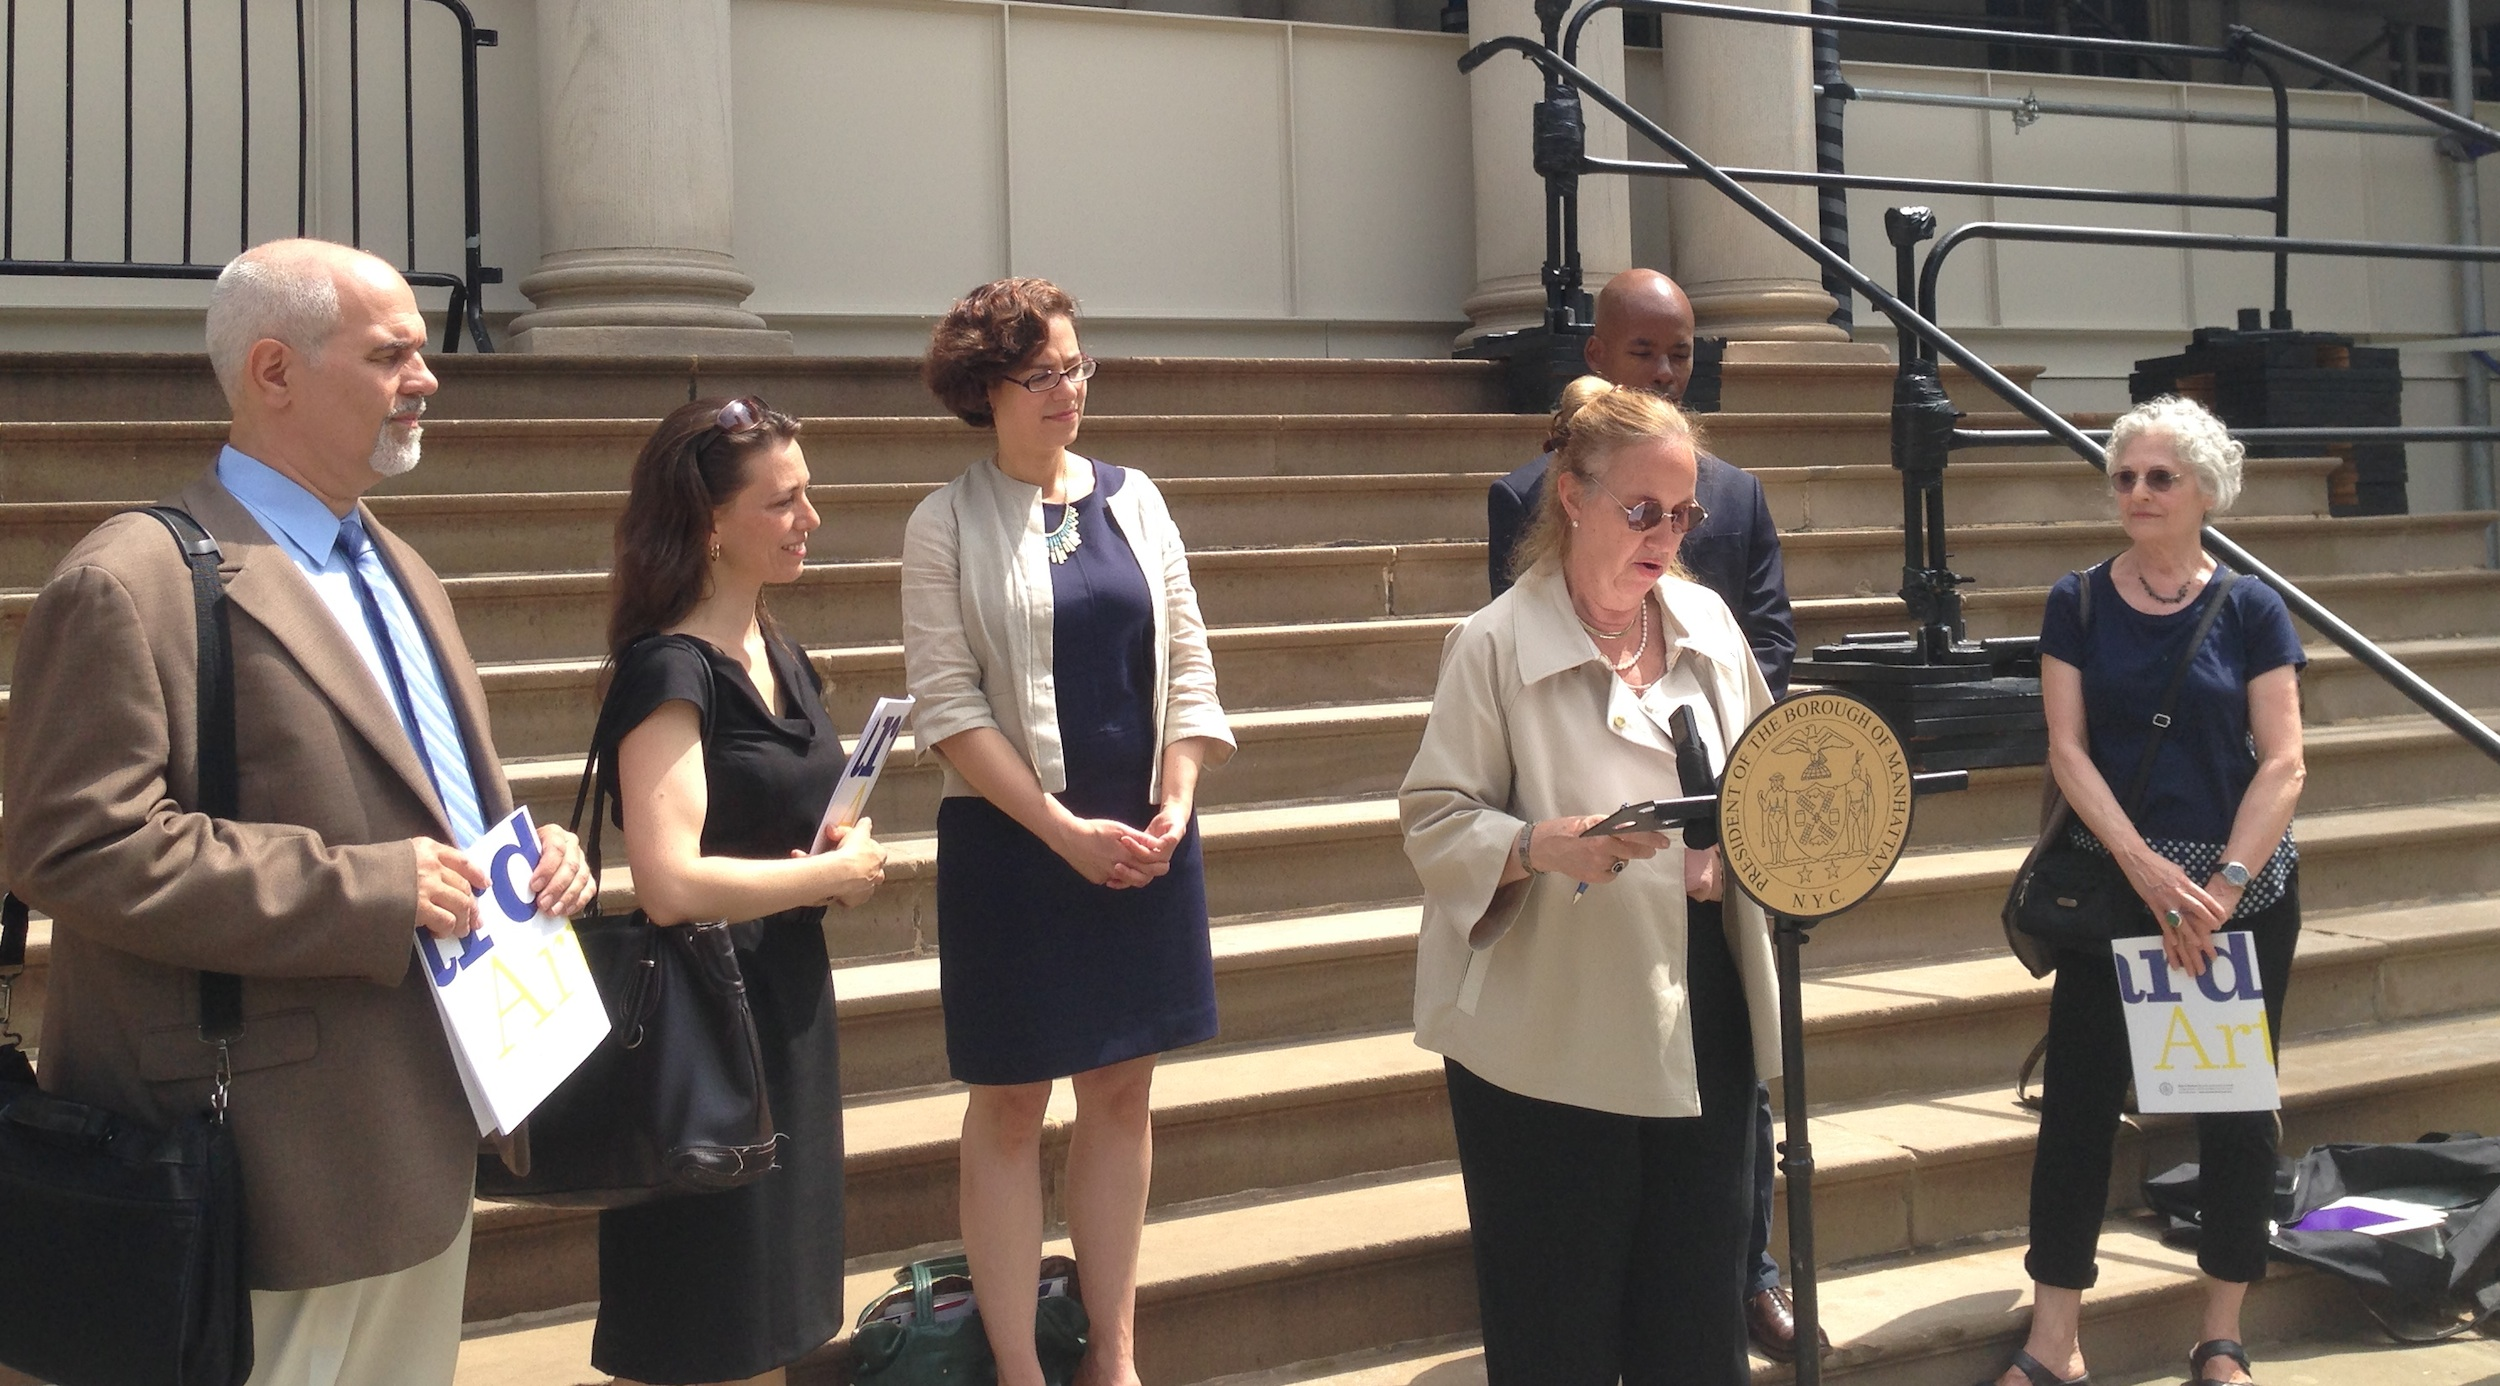 Manhattan Borough President Gale Brewer said some of the city's arts funding will go toward co-located schools.